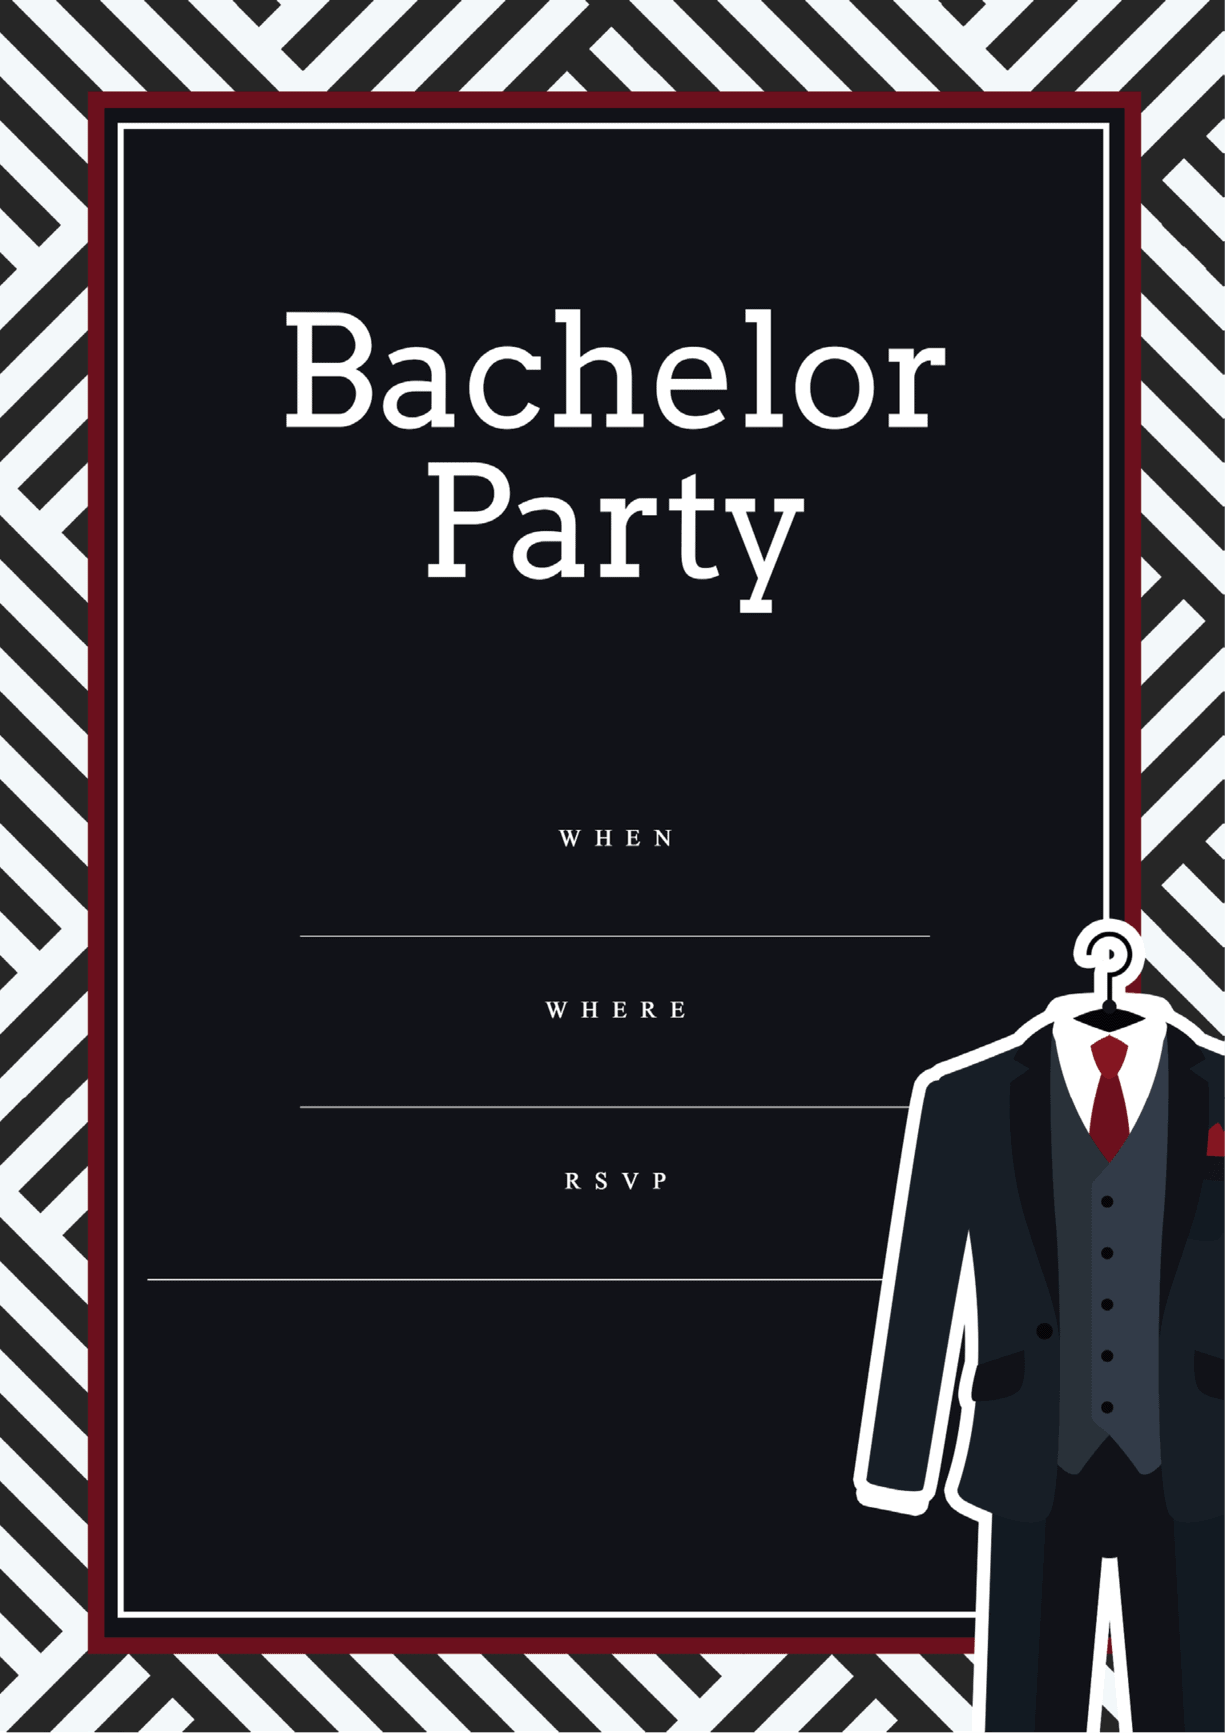 Free bucks night bachelor party invitations bachelor party invititation black suit and tie monicamarmolfo Choice Image